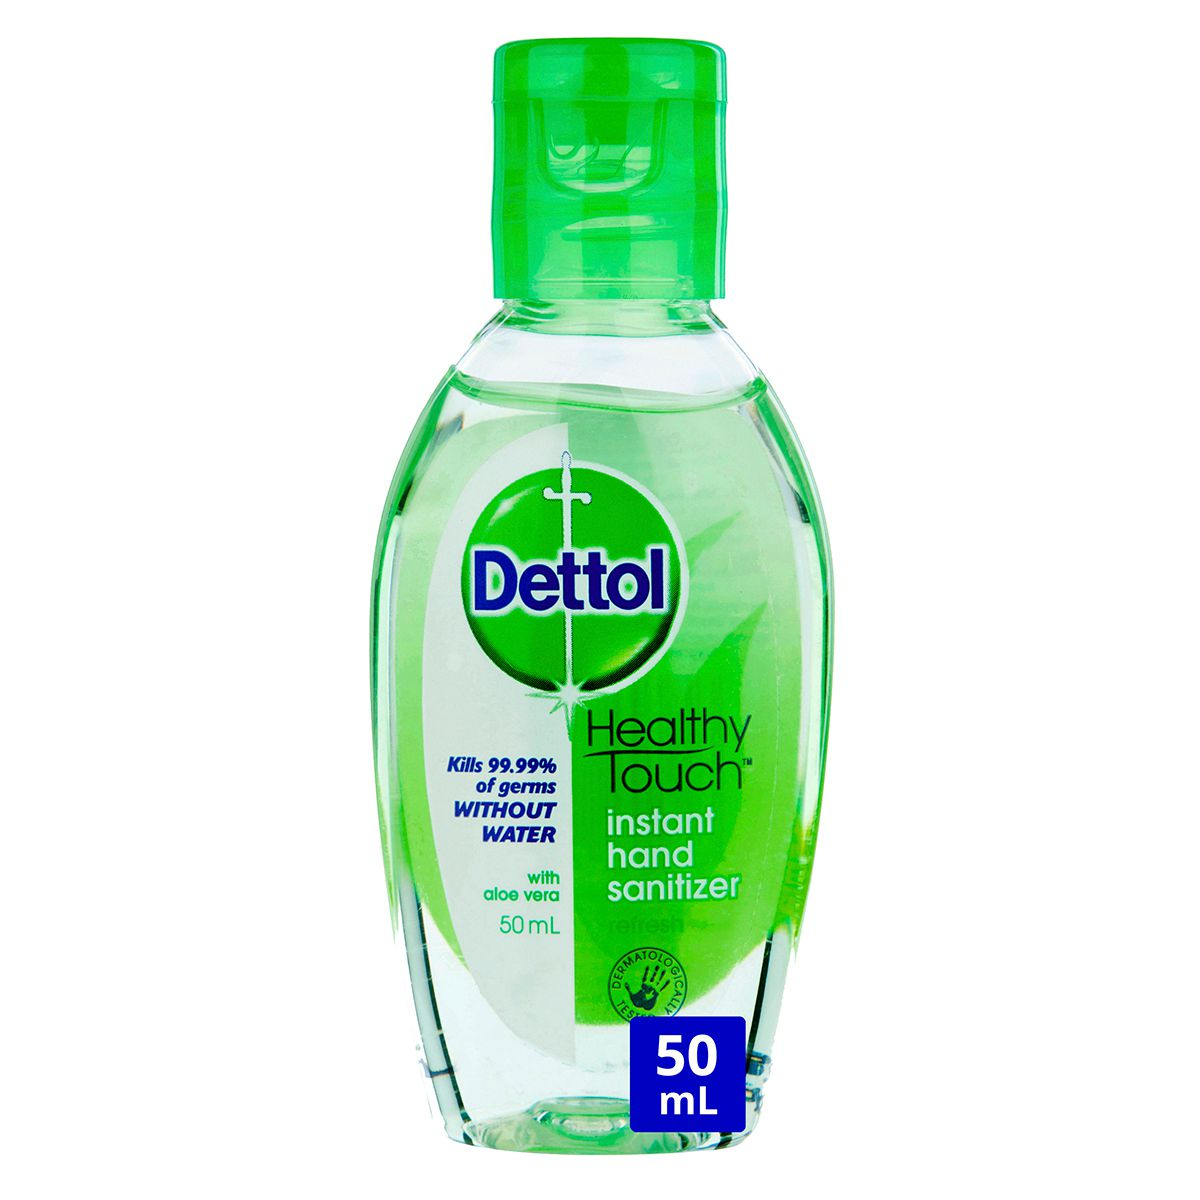 Dettol Instant Hand Sanitizer Refresh 50ml